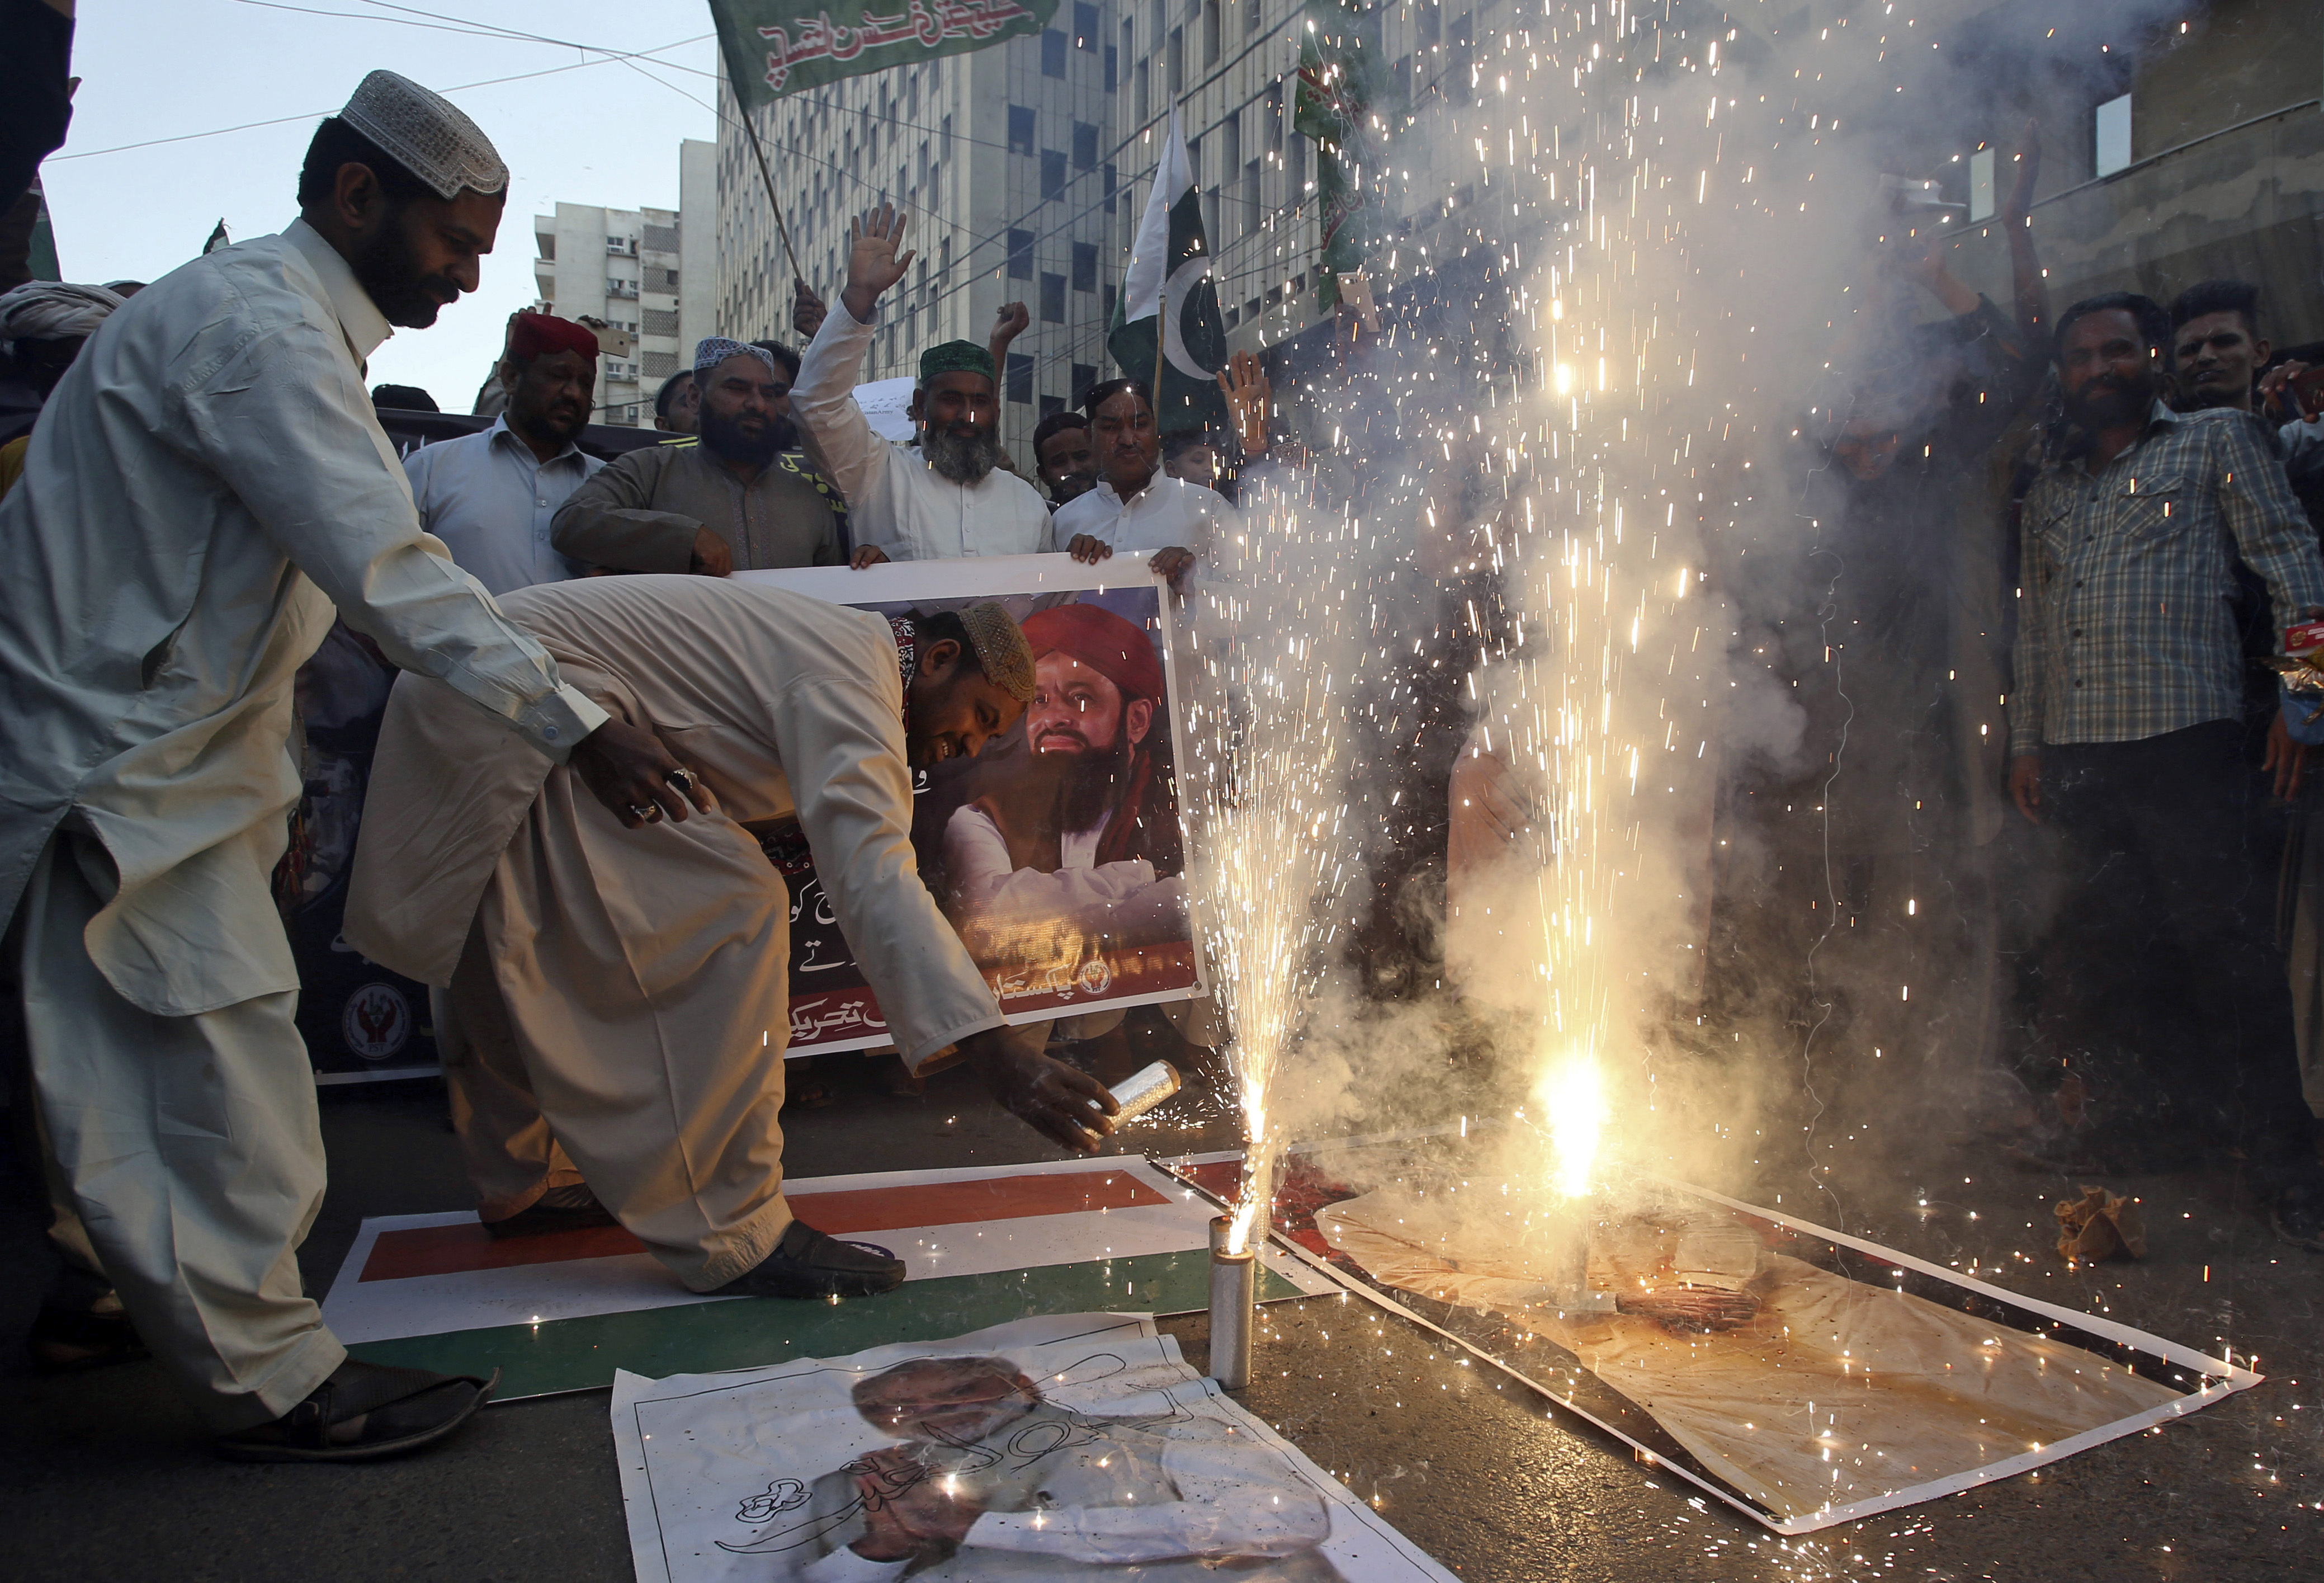 People celebrate the shooting down of Indian planes by Pakistani forces with fireworks, in Karachi, Pakistan, Wednesday, Feb. 27, 2019. Pakistan's military said Wednesday it shot down two Indian warplanes in the disputed region of Kashmir and captured two pilots, raising tensions between the nuclear-armed rivals to a level unseen in 20 years. (AP Photo/Fareed Khan)